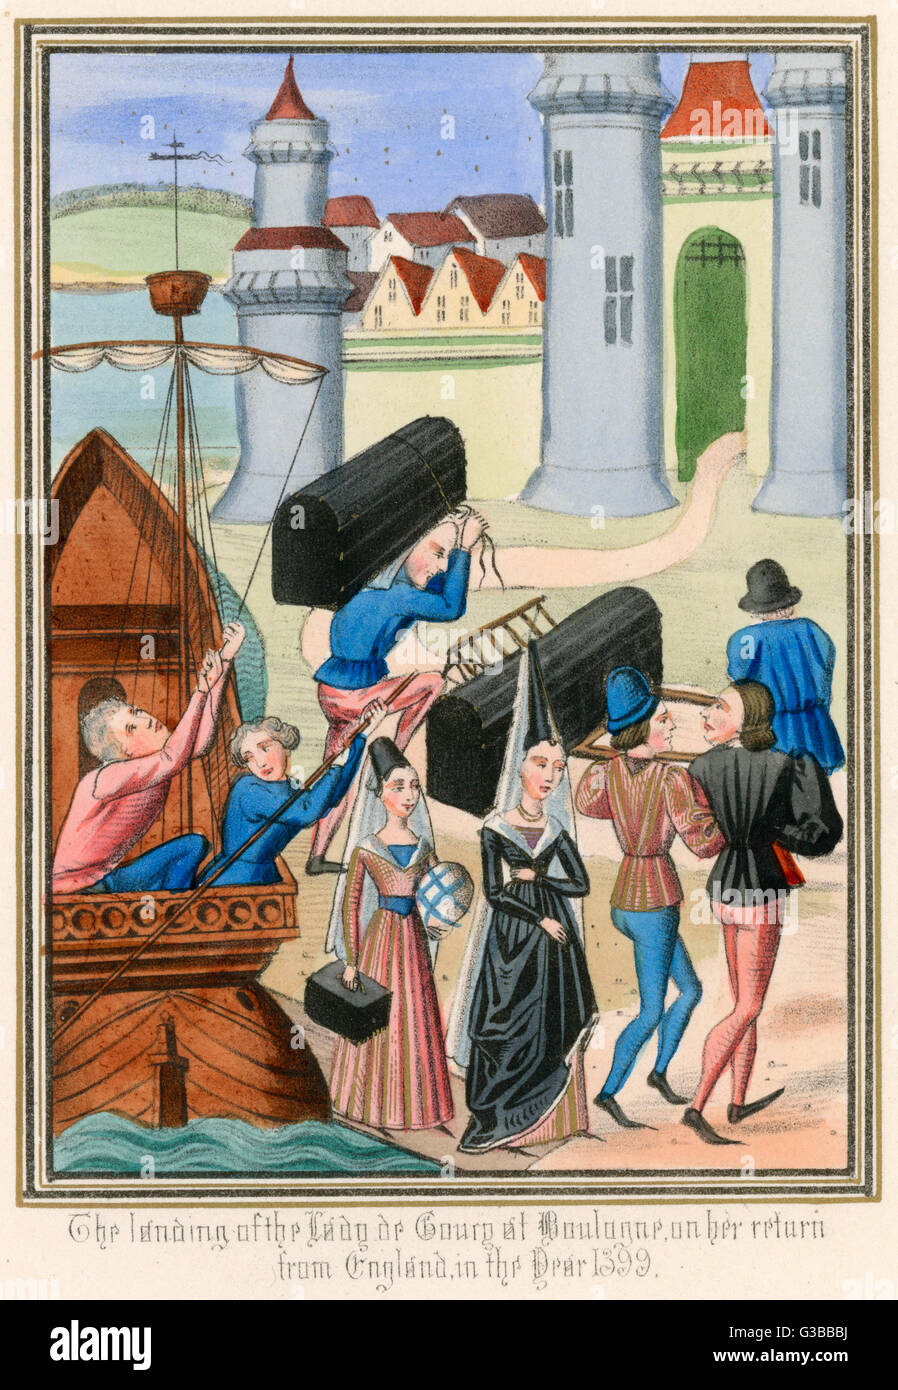 La Dame De Courcy One Of Queen Isabellas Attendant Ladies Returns To France When King Richard Ii Is Deposed She And Her Luggage Are Seen Landing At